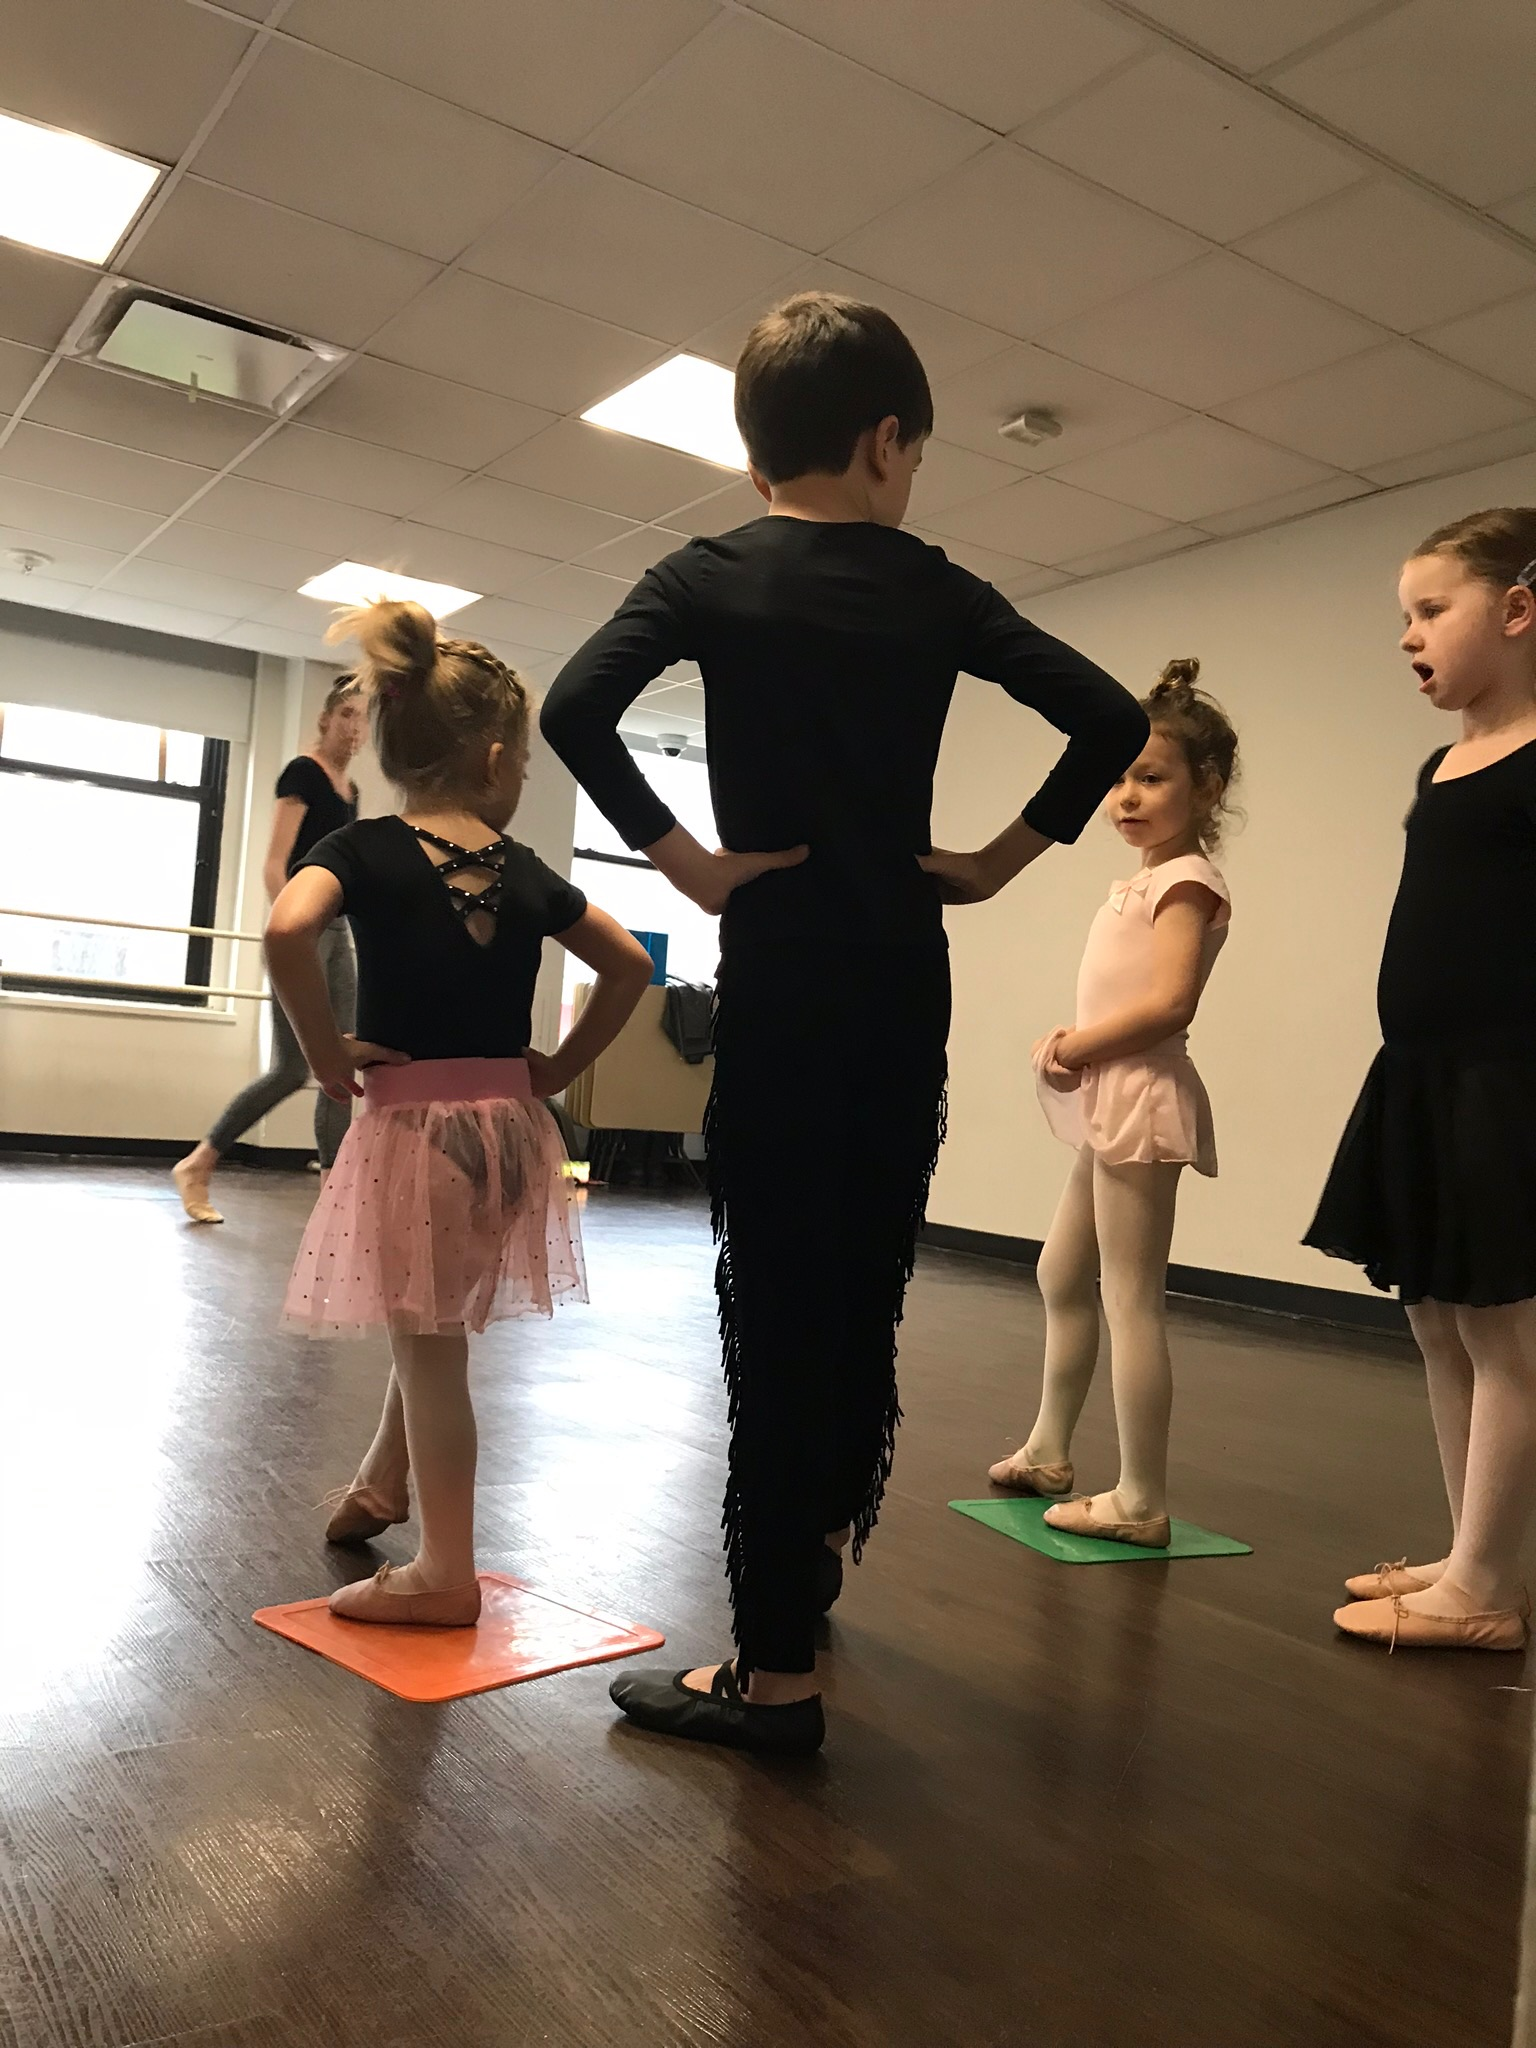 Lucie getting to be line leader in ballet class for the first time!